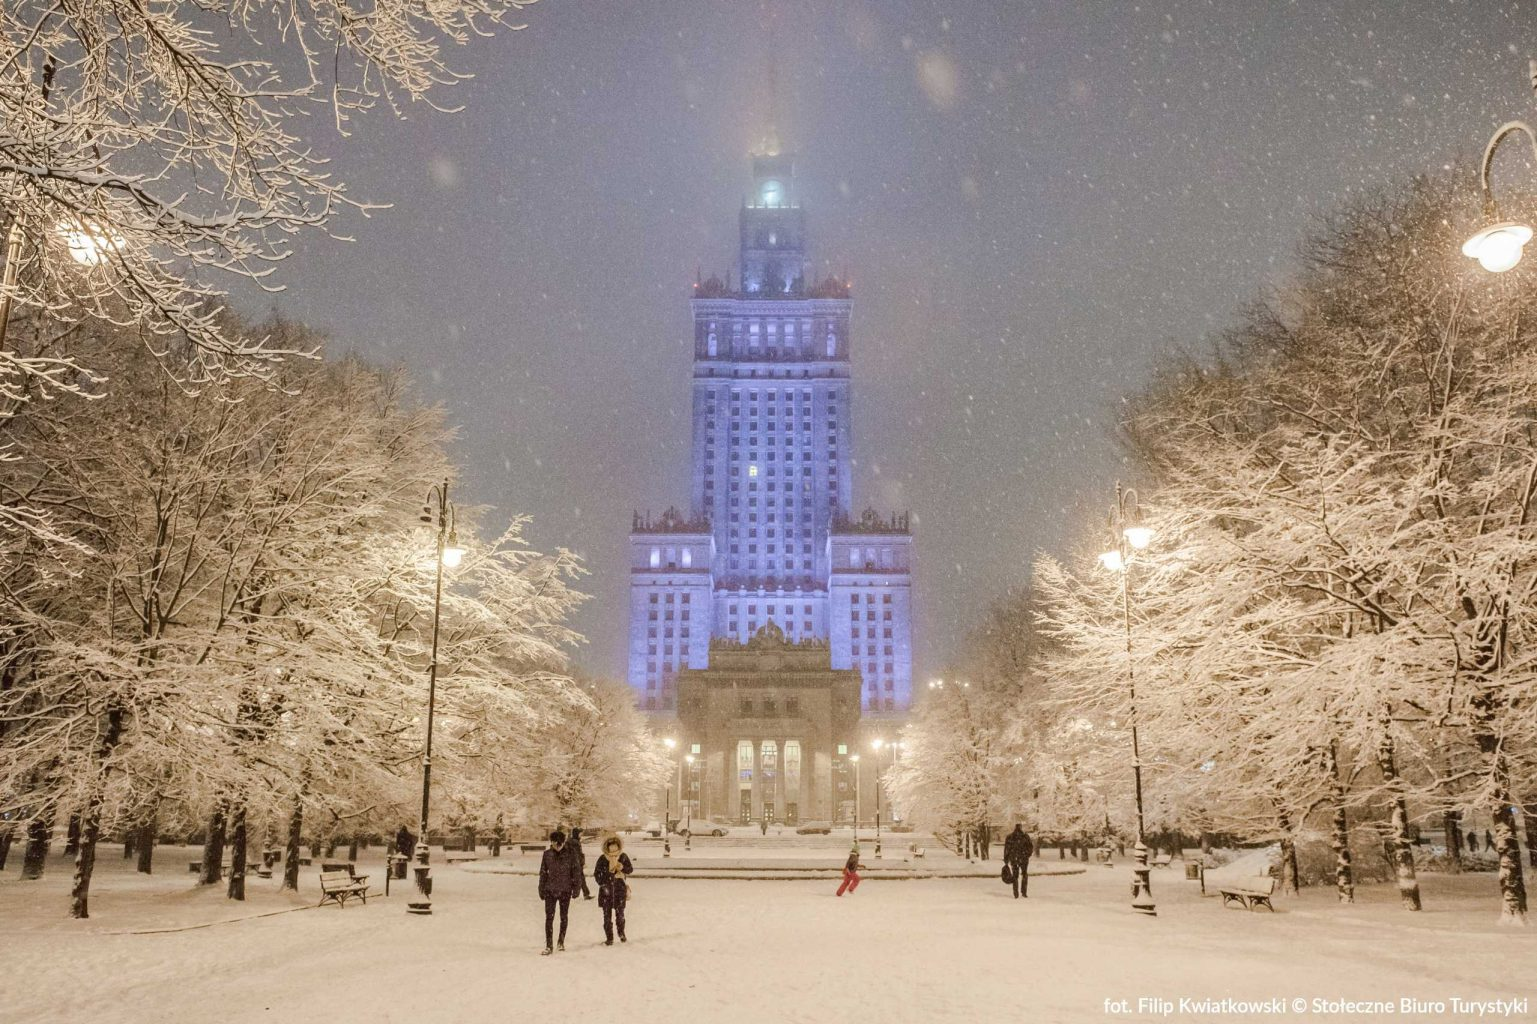 palace of science and culture warsaw in winter